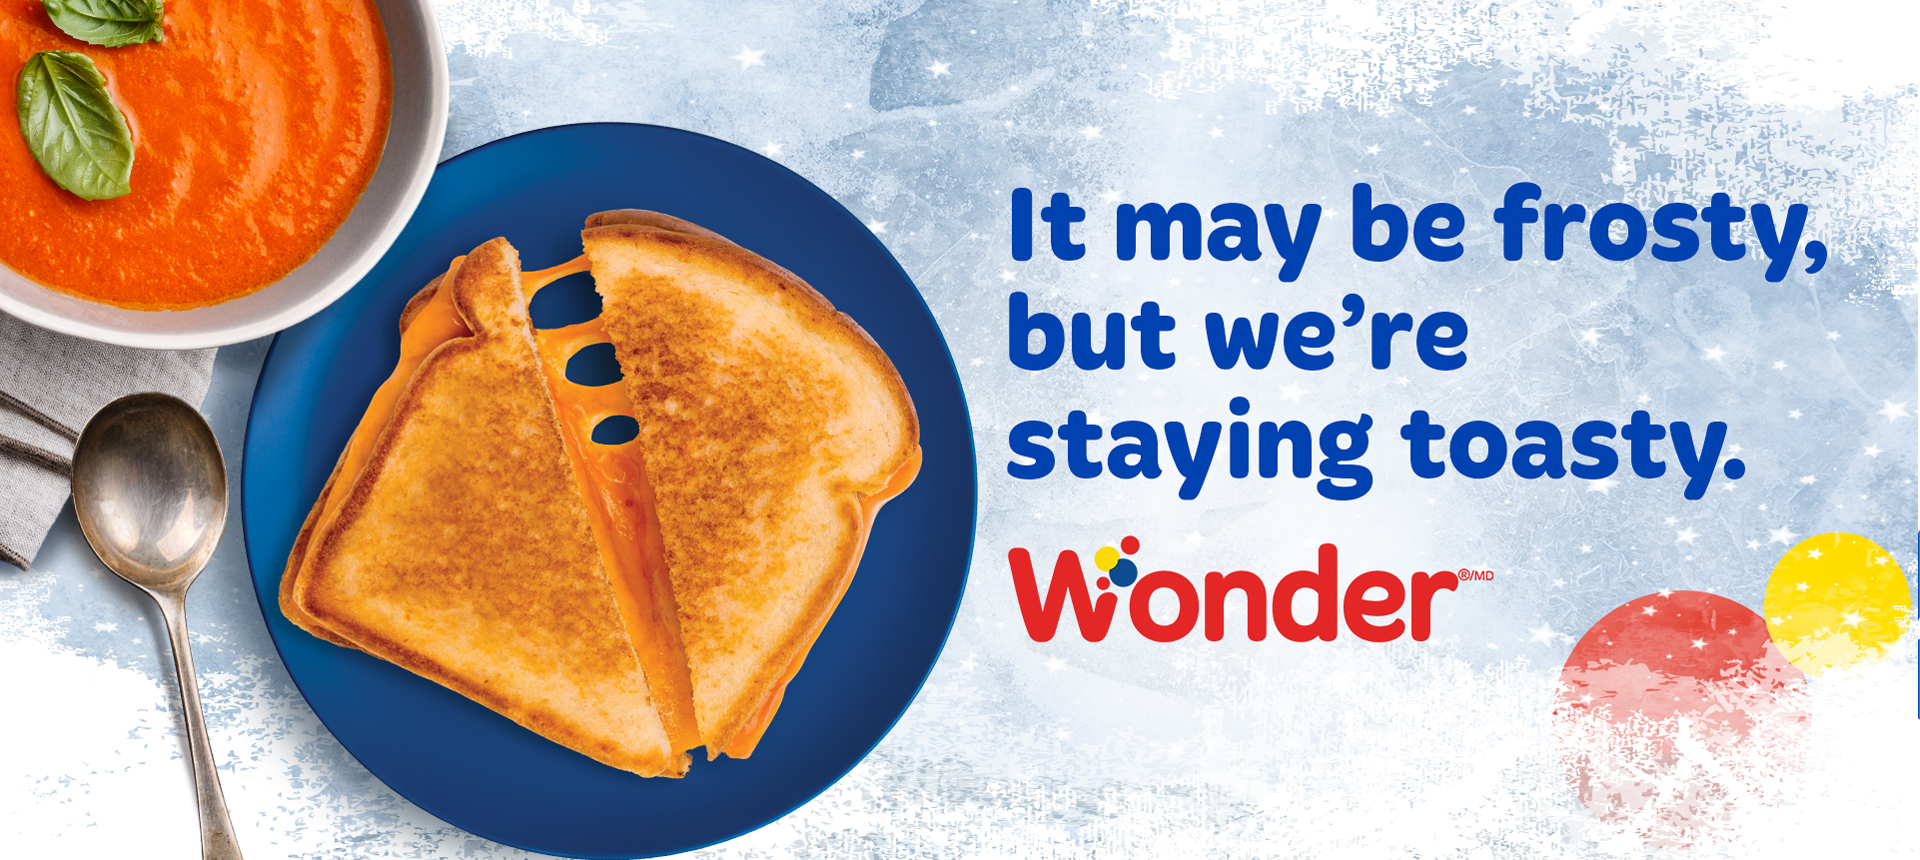 "Image that reads ""It may be frosty, but we're staying toasty"" with a grilled cheese sandwich and tomato soup on ice"